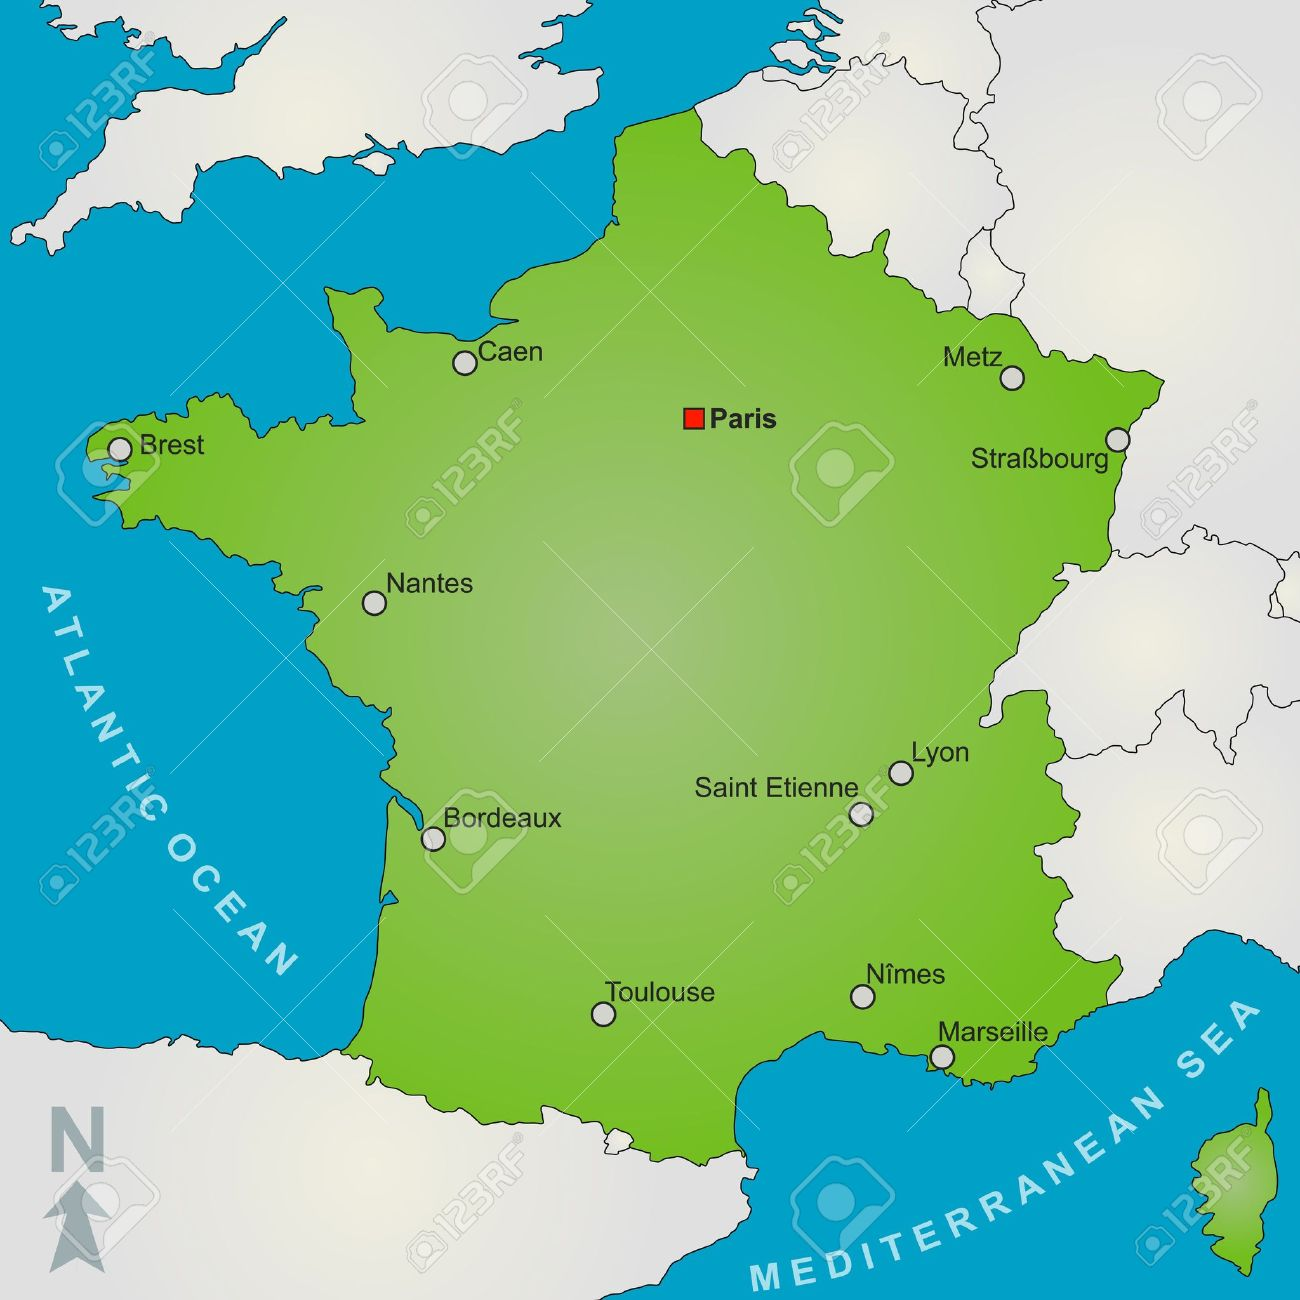 Map Of France Showing Lyon.A Stylized Map Of France Showing Several Big Cities And Nearby